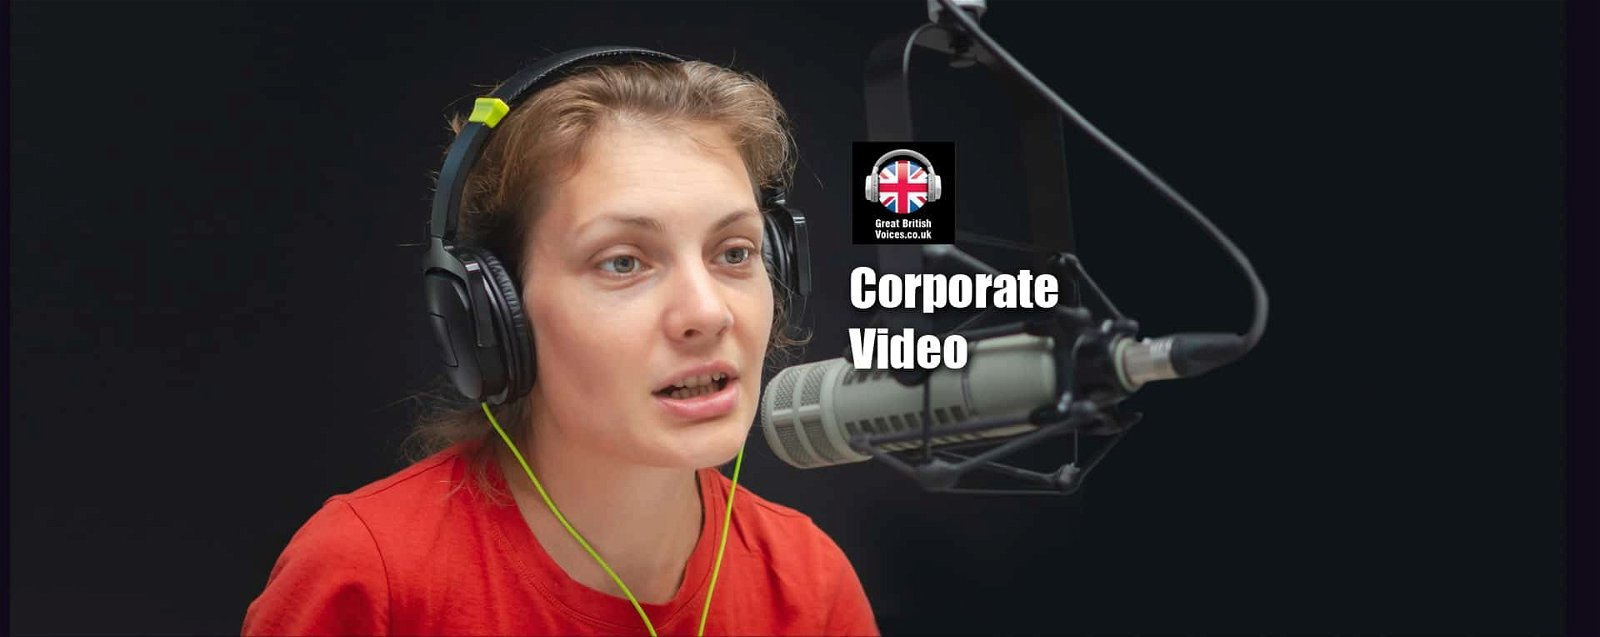 Corporate video Voices at Great British Voices-min